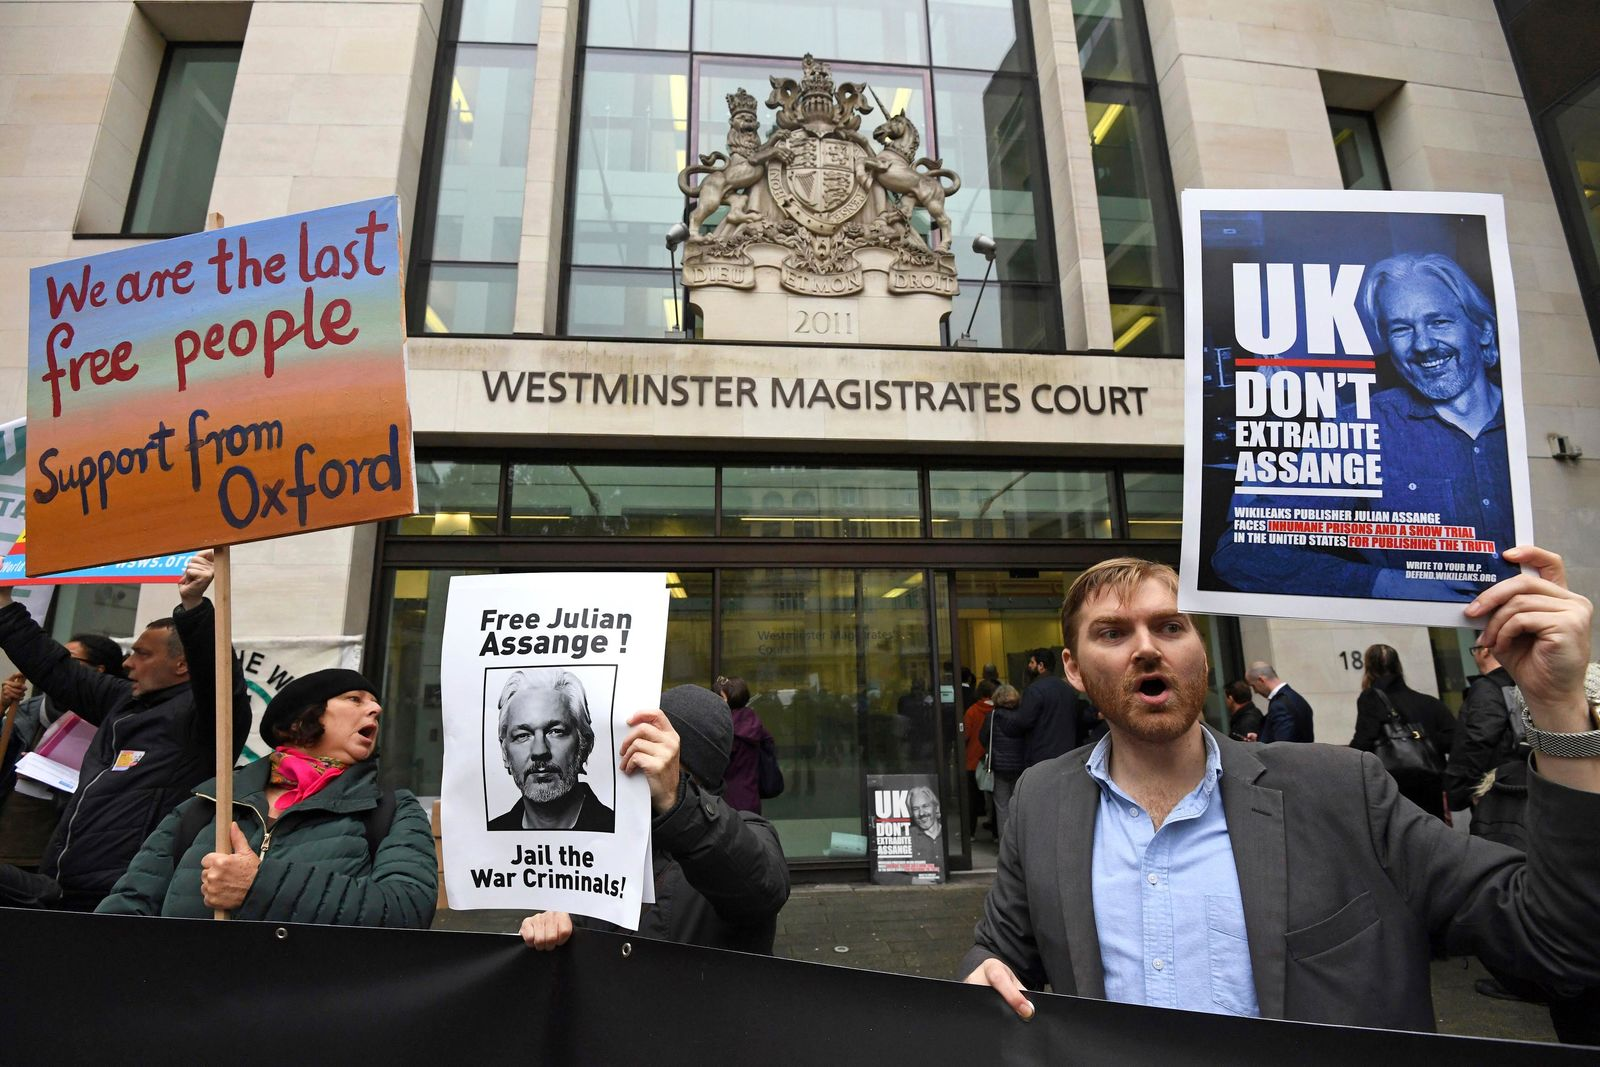 Supporters of Wikileaks founder Julian Assange demonstrate oustide Westminster Magistrates' Court in London where Assange is expected to appear as he fights extradition to the United States on charges of conspiring to hack into a Pentagon computer, in London, Monday, Oct, 21, 2019. (Kirsty O'Connor/PA via AP)